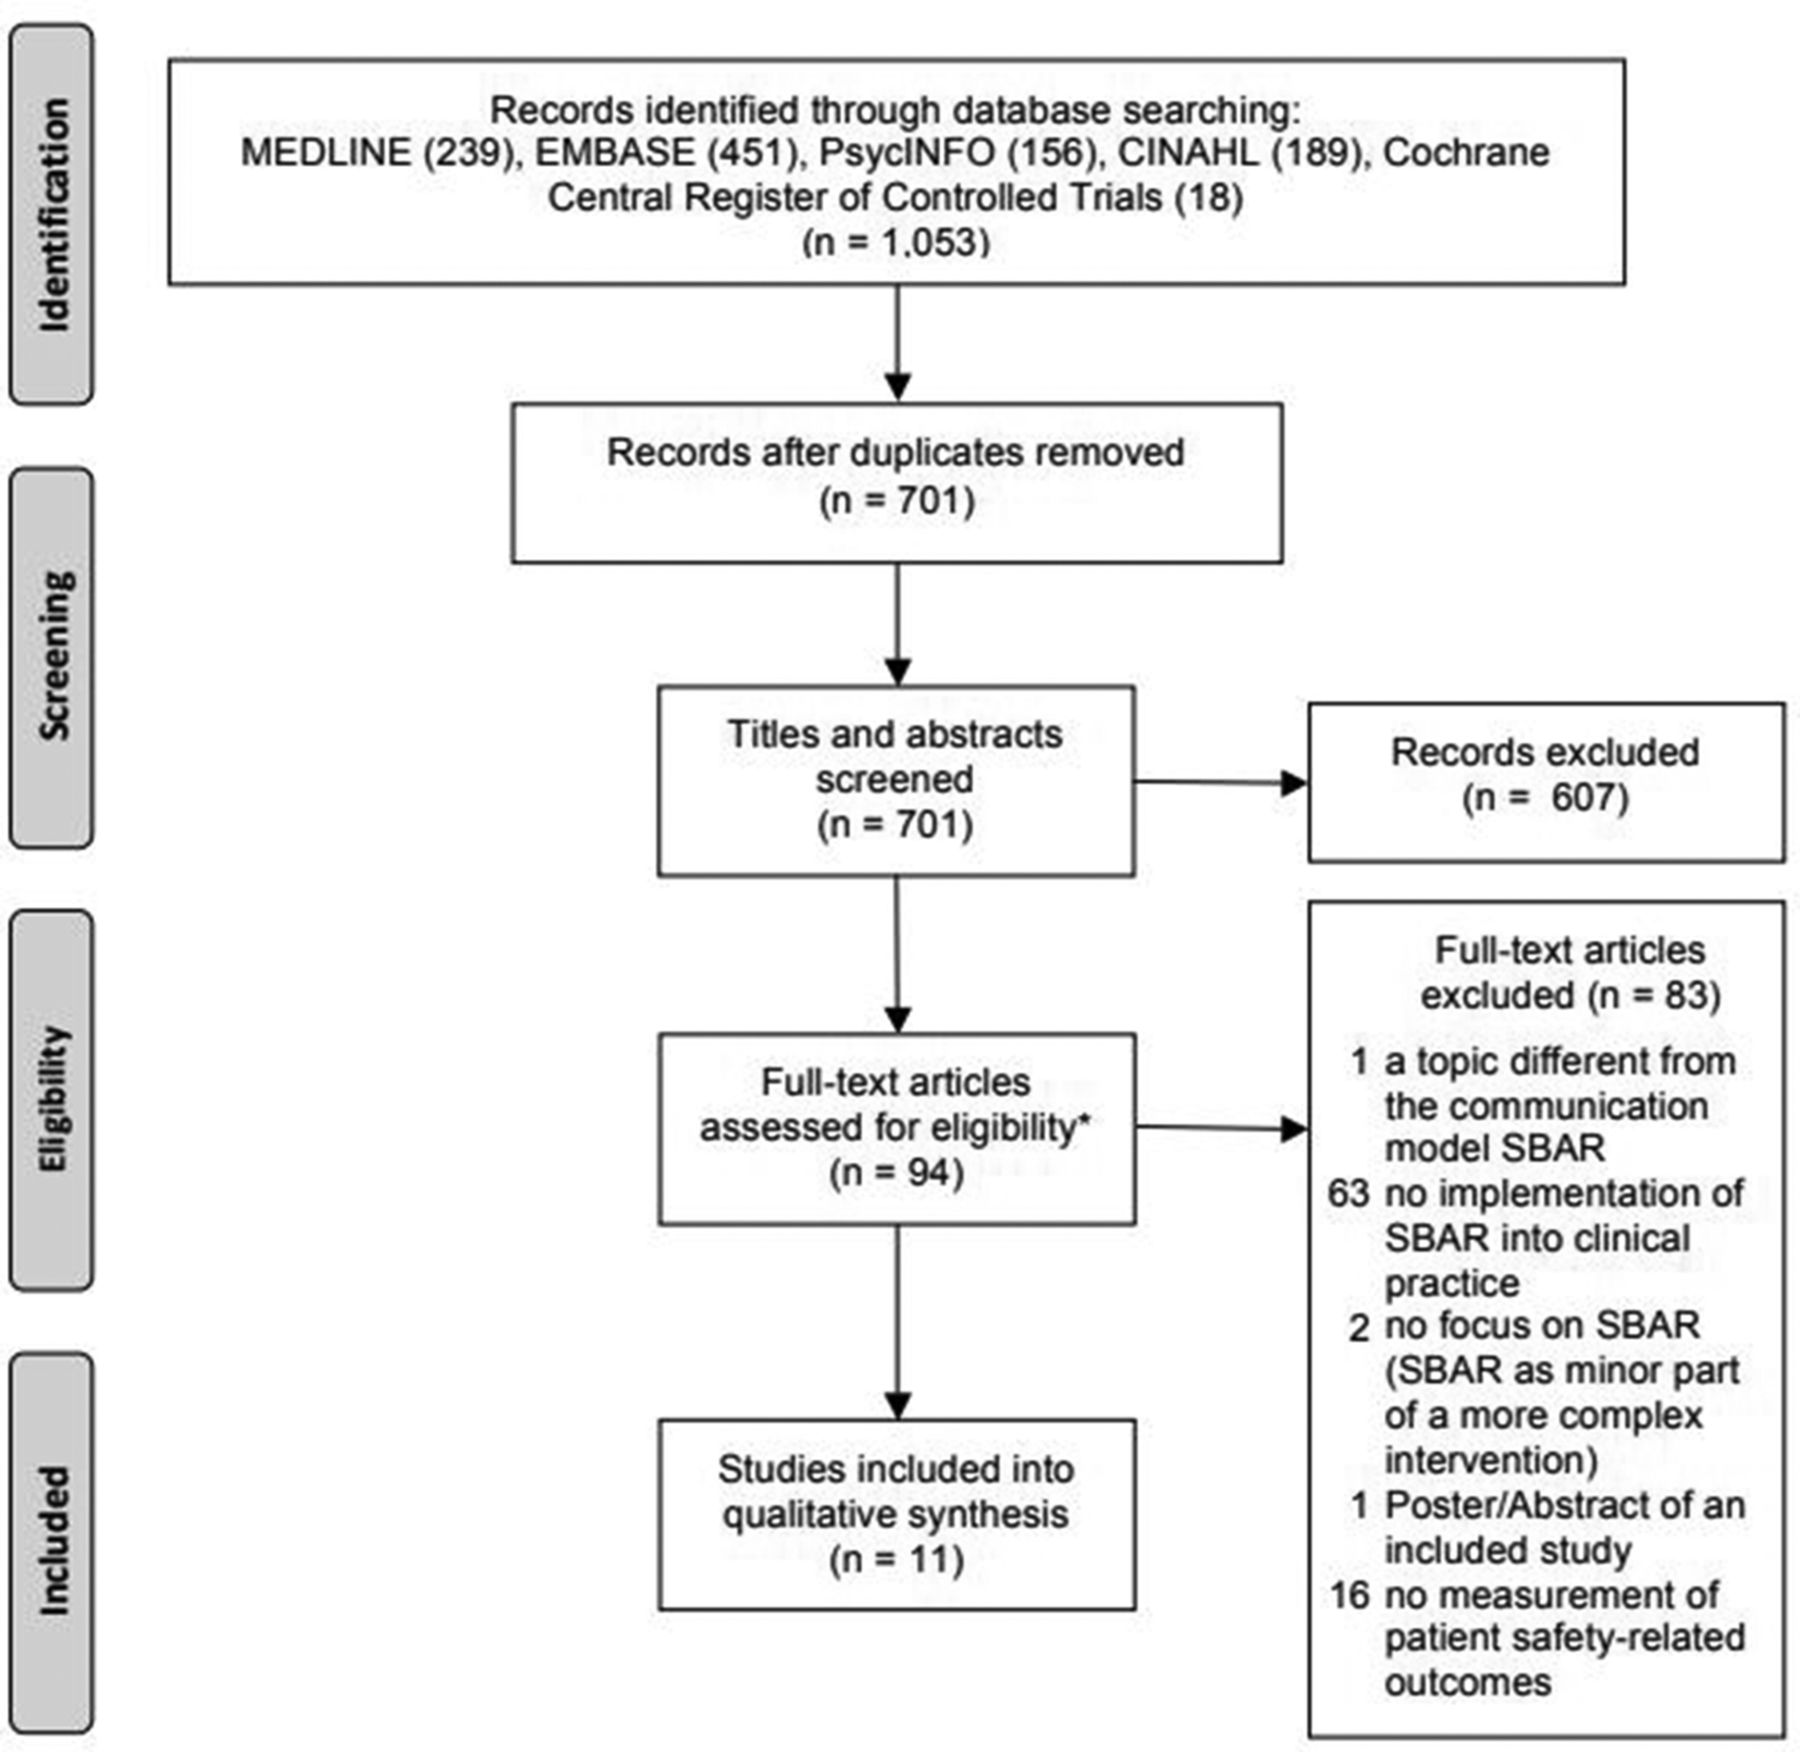 Impact of the communication and patient hand-off tool SBAR on